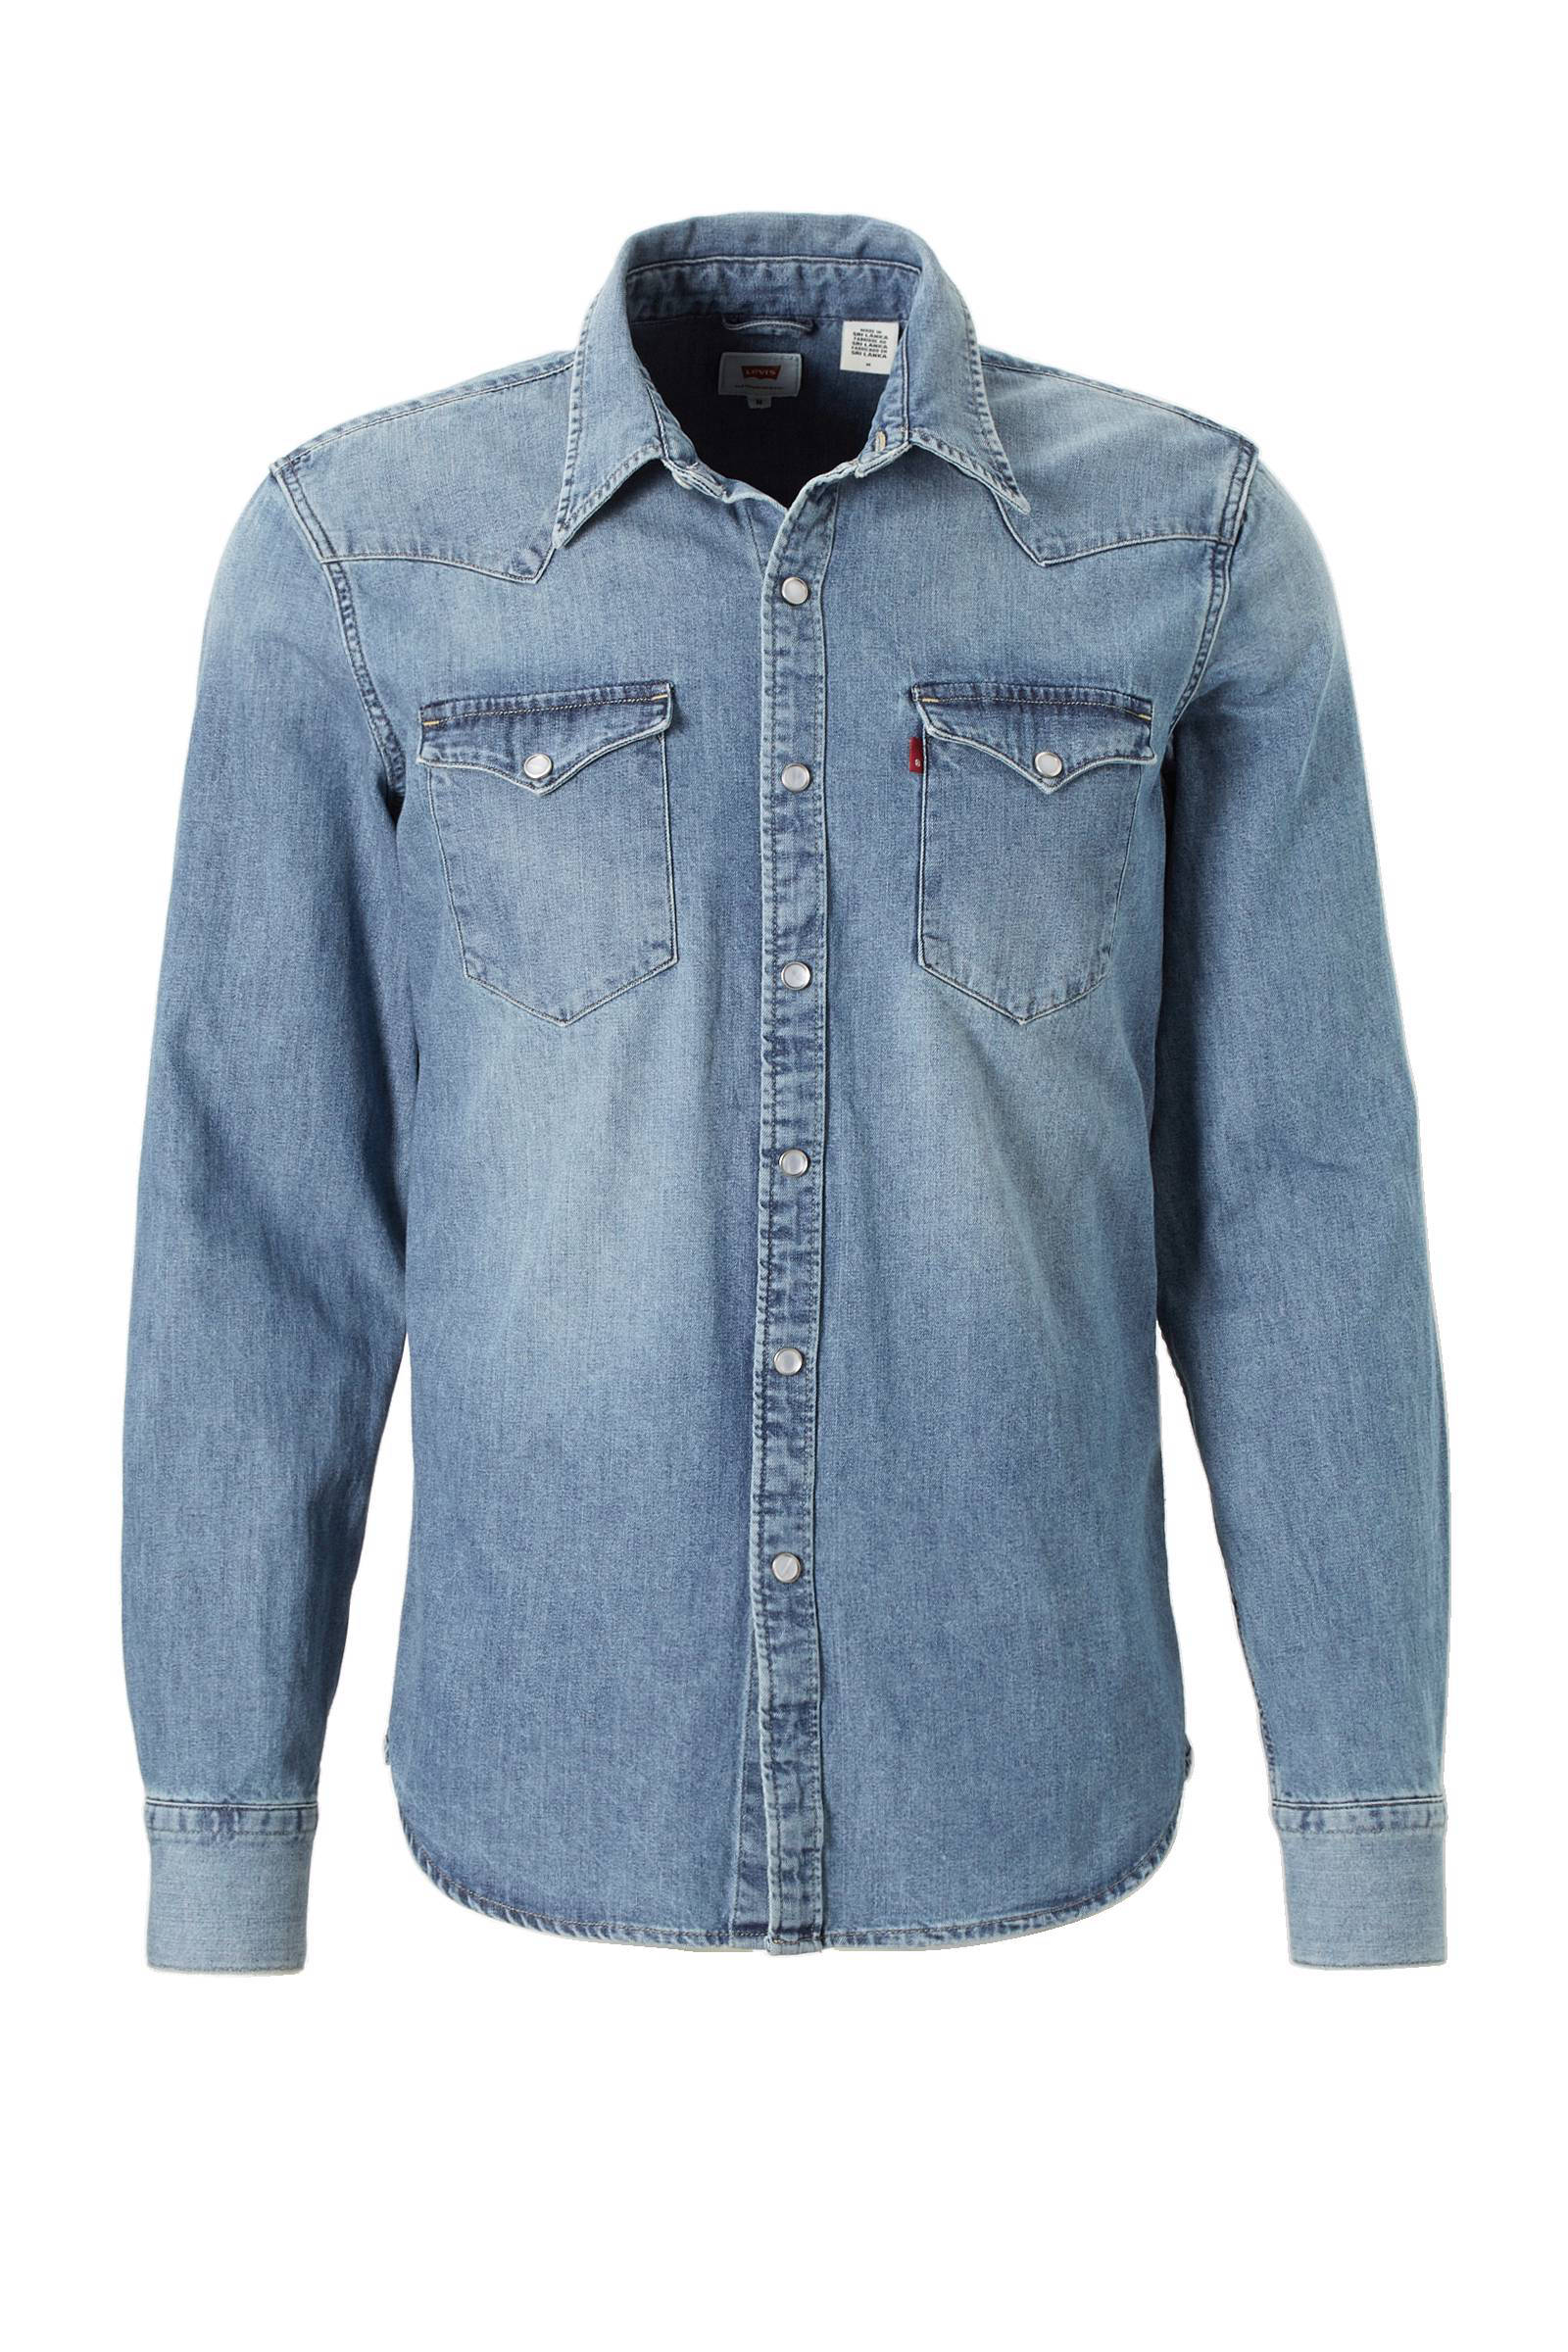 Levi's denim overhemd (heren)